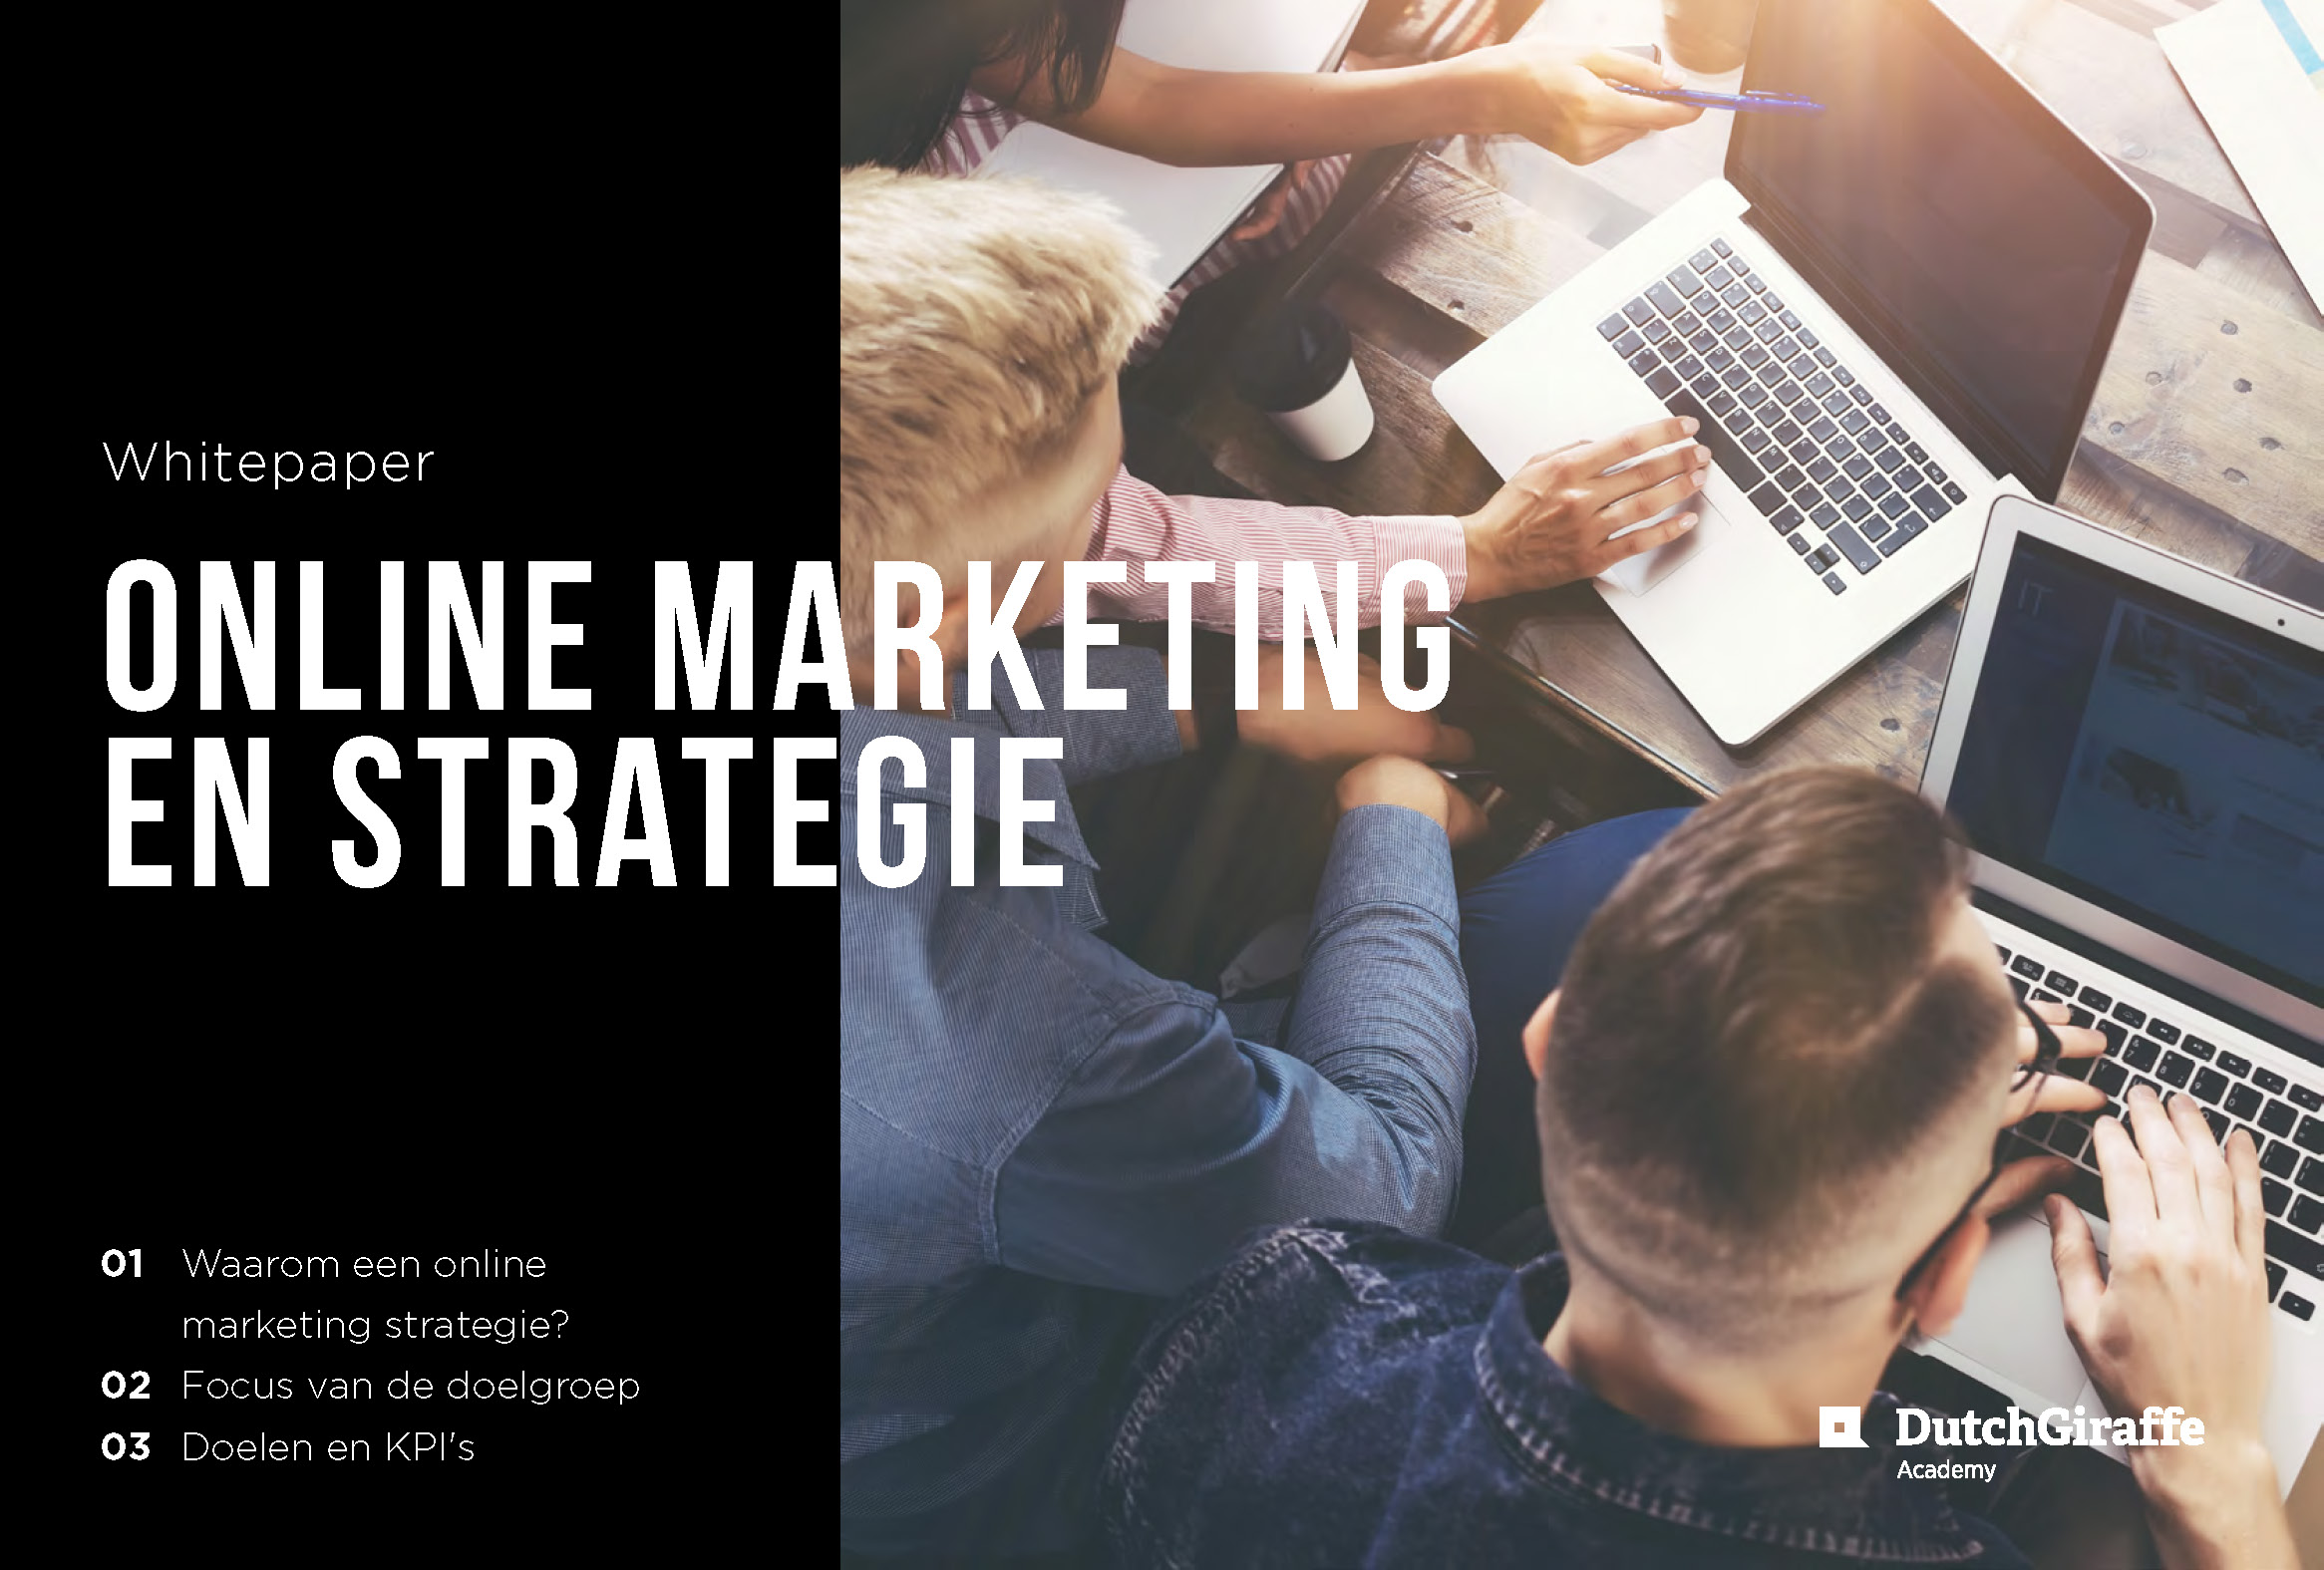 Whitepaper online marketing strategie – Dutchgiraffe | Digital Creatives